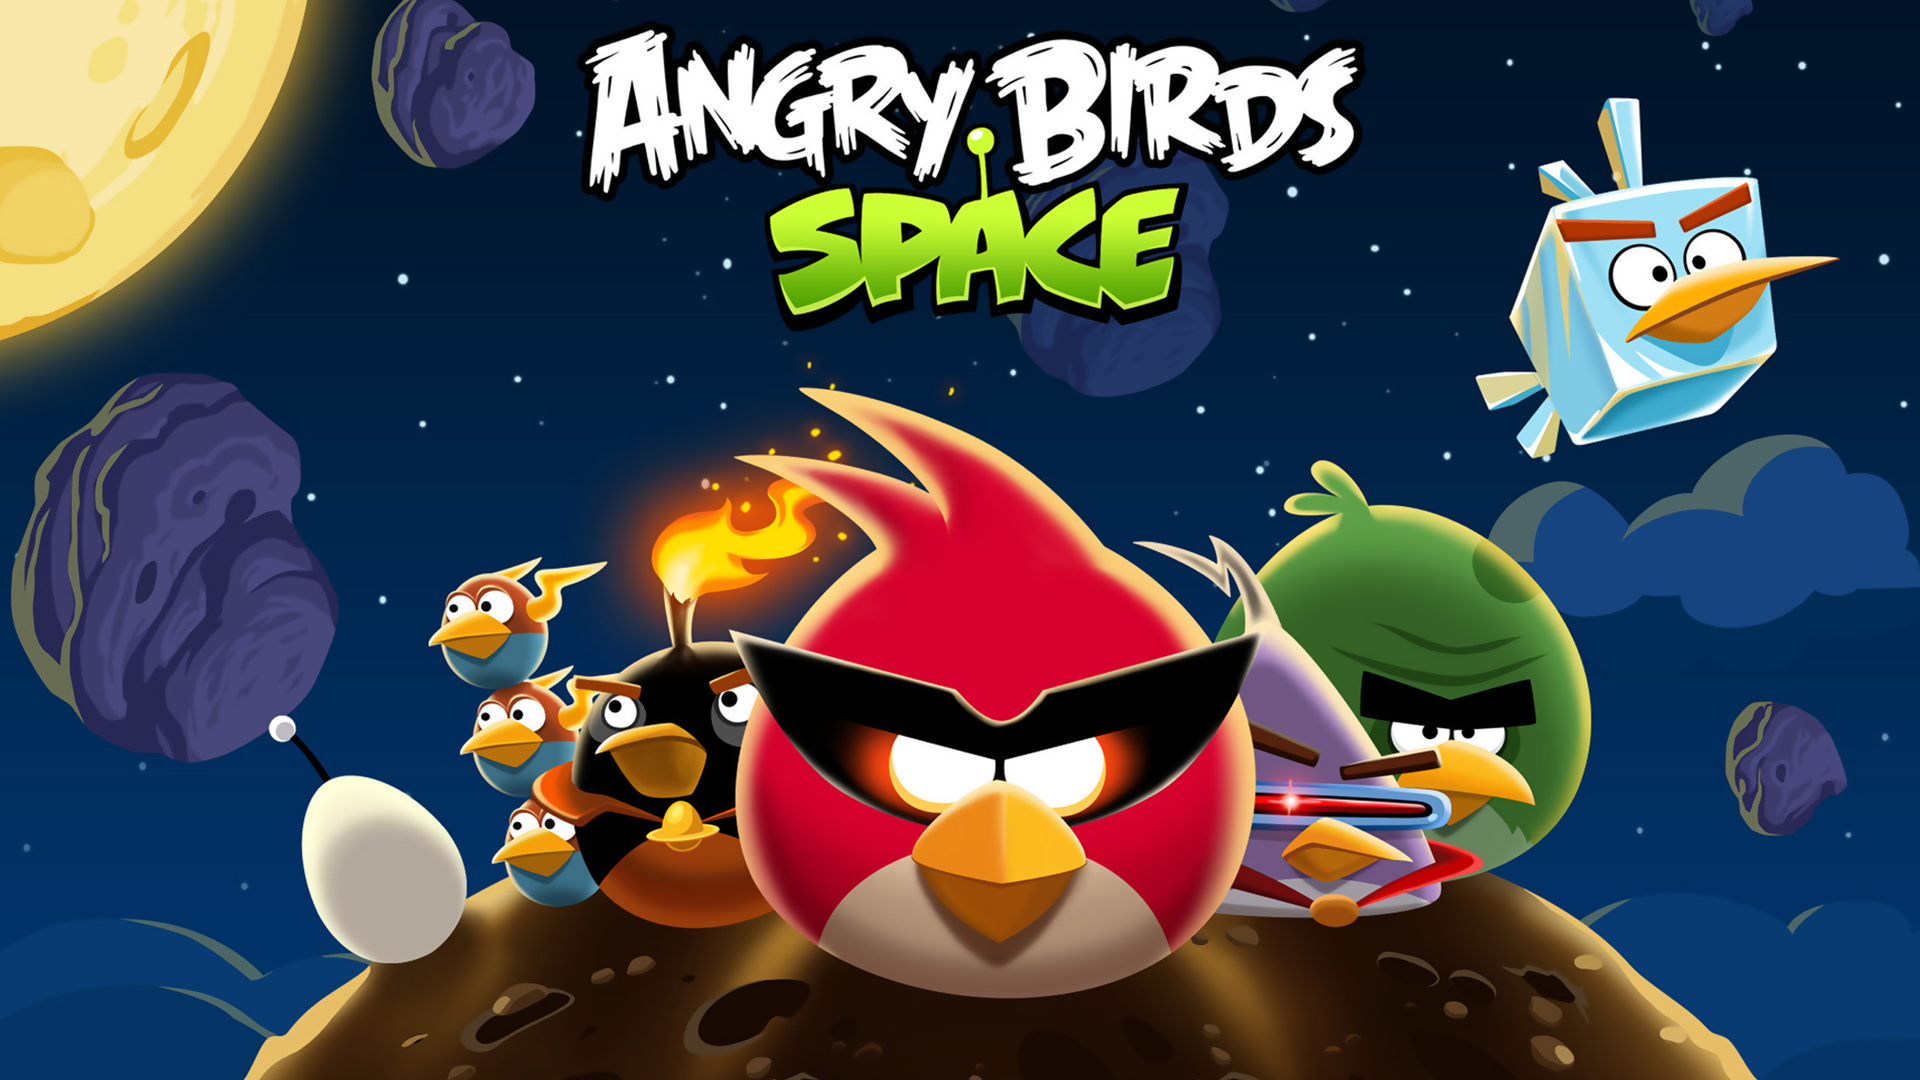 Angry birds space game wallpapers wallpapers hd angry birds space game voltagebd Choice Image